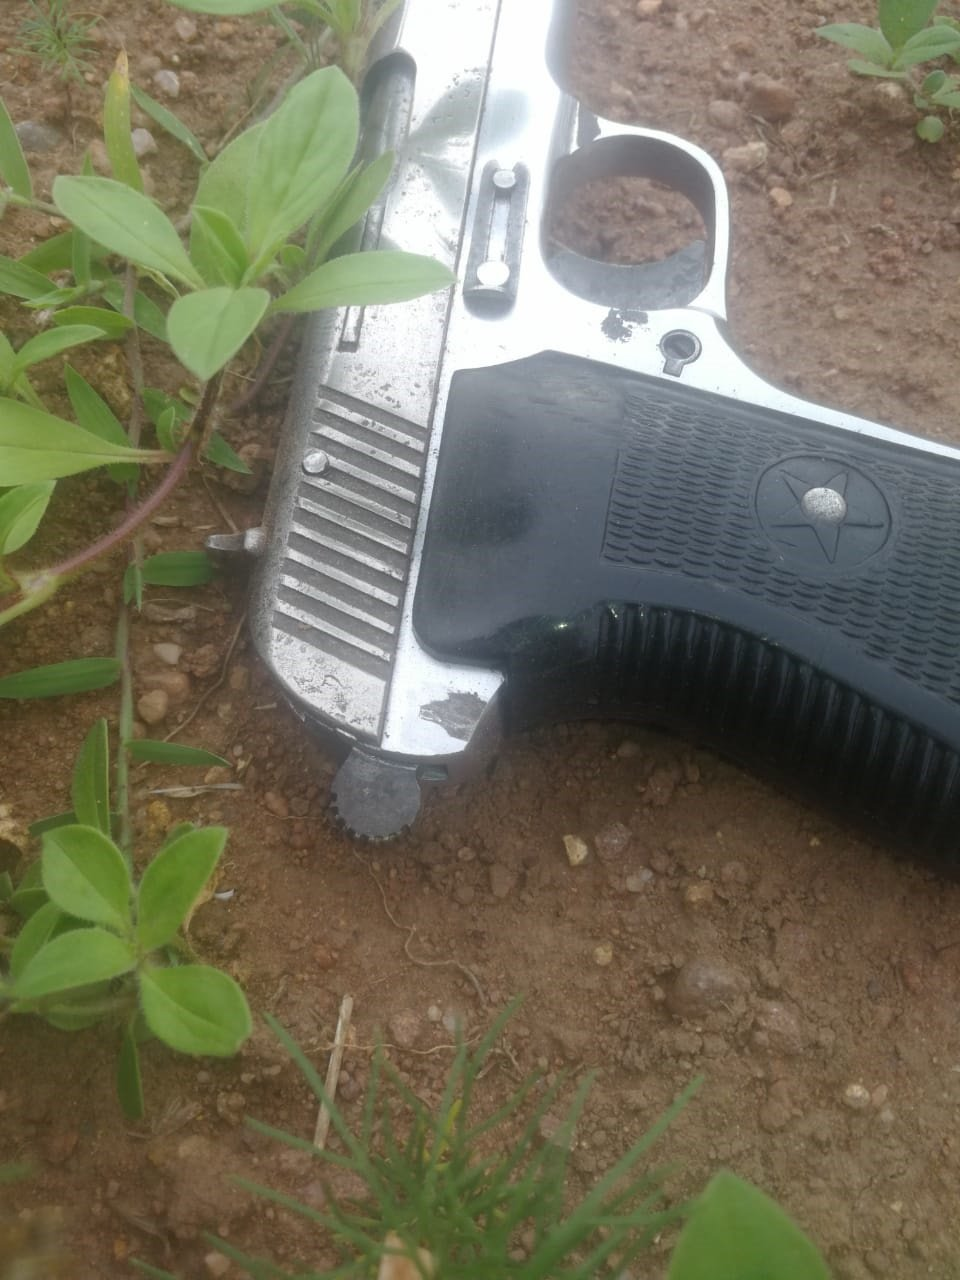 One of the recovered firearms from a fatal shoot out. (Supplied)